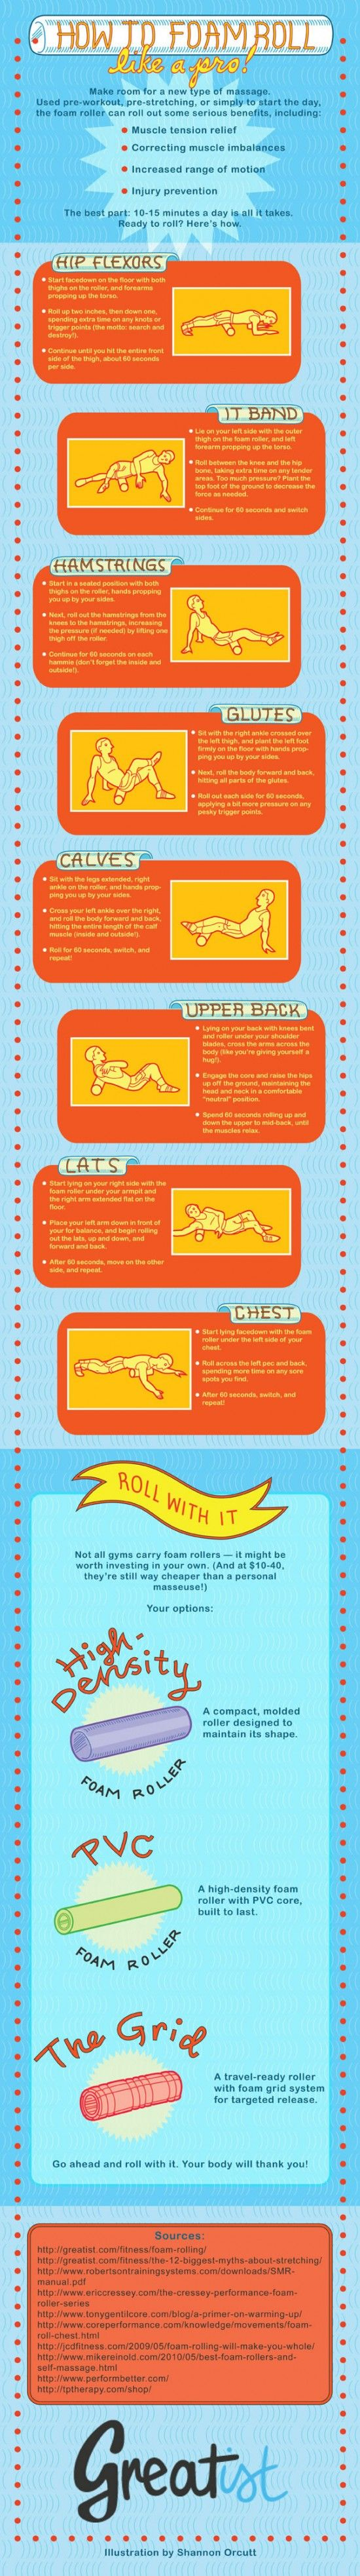 How to Foamroll Infographic